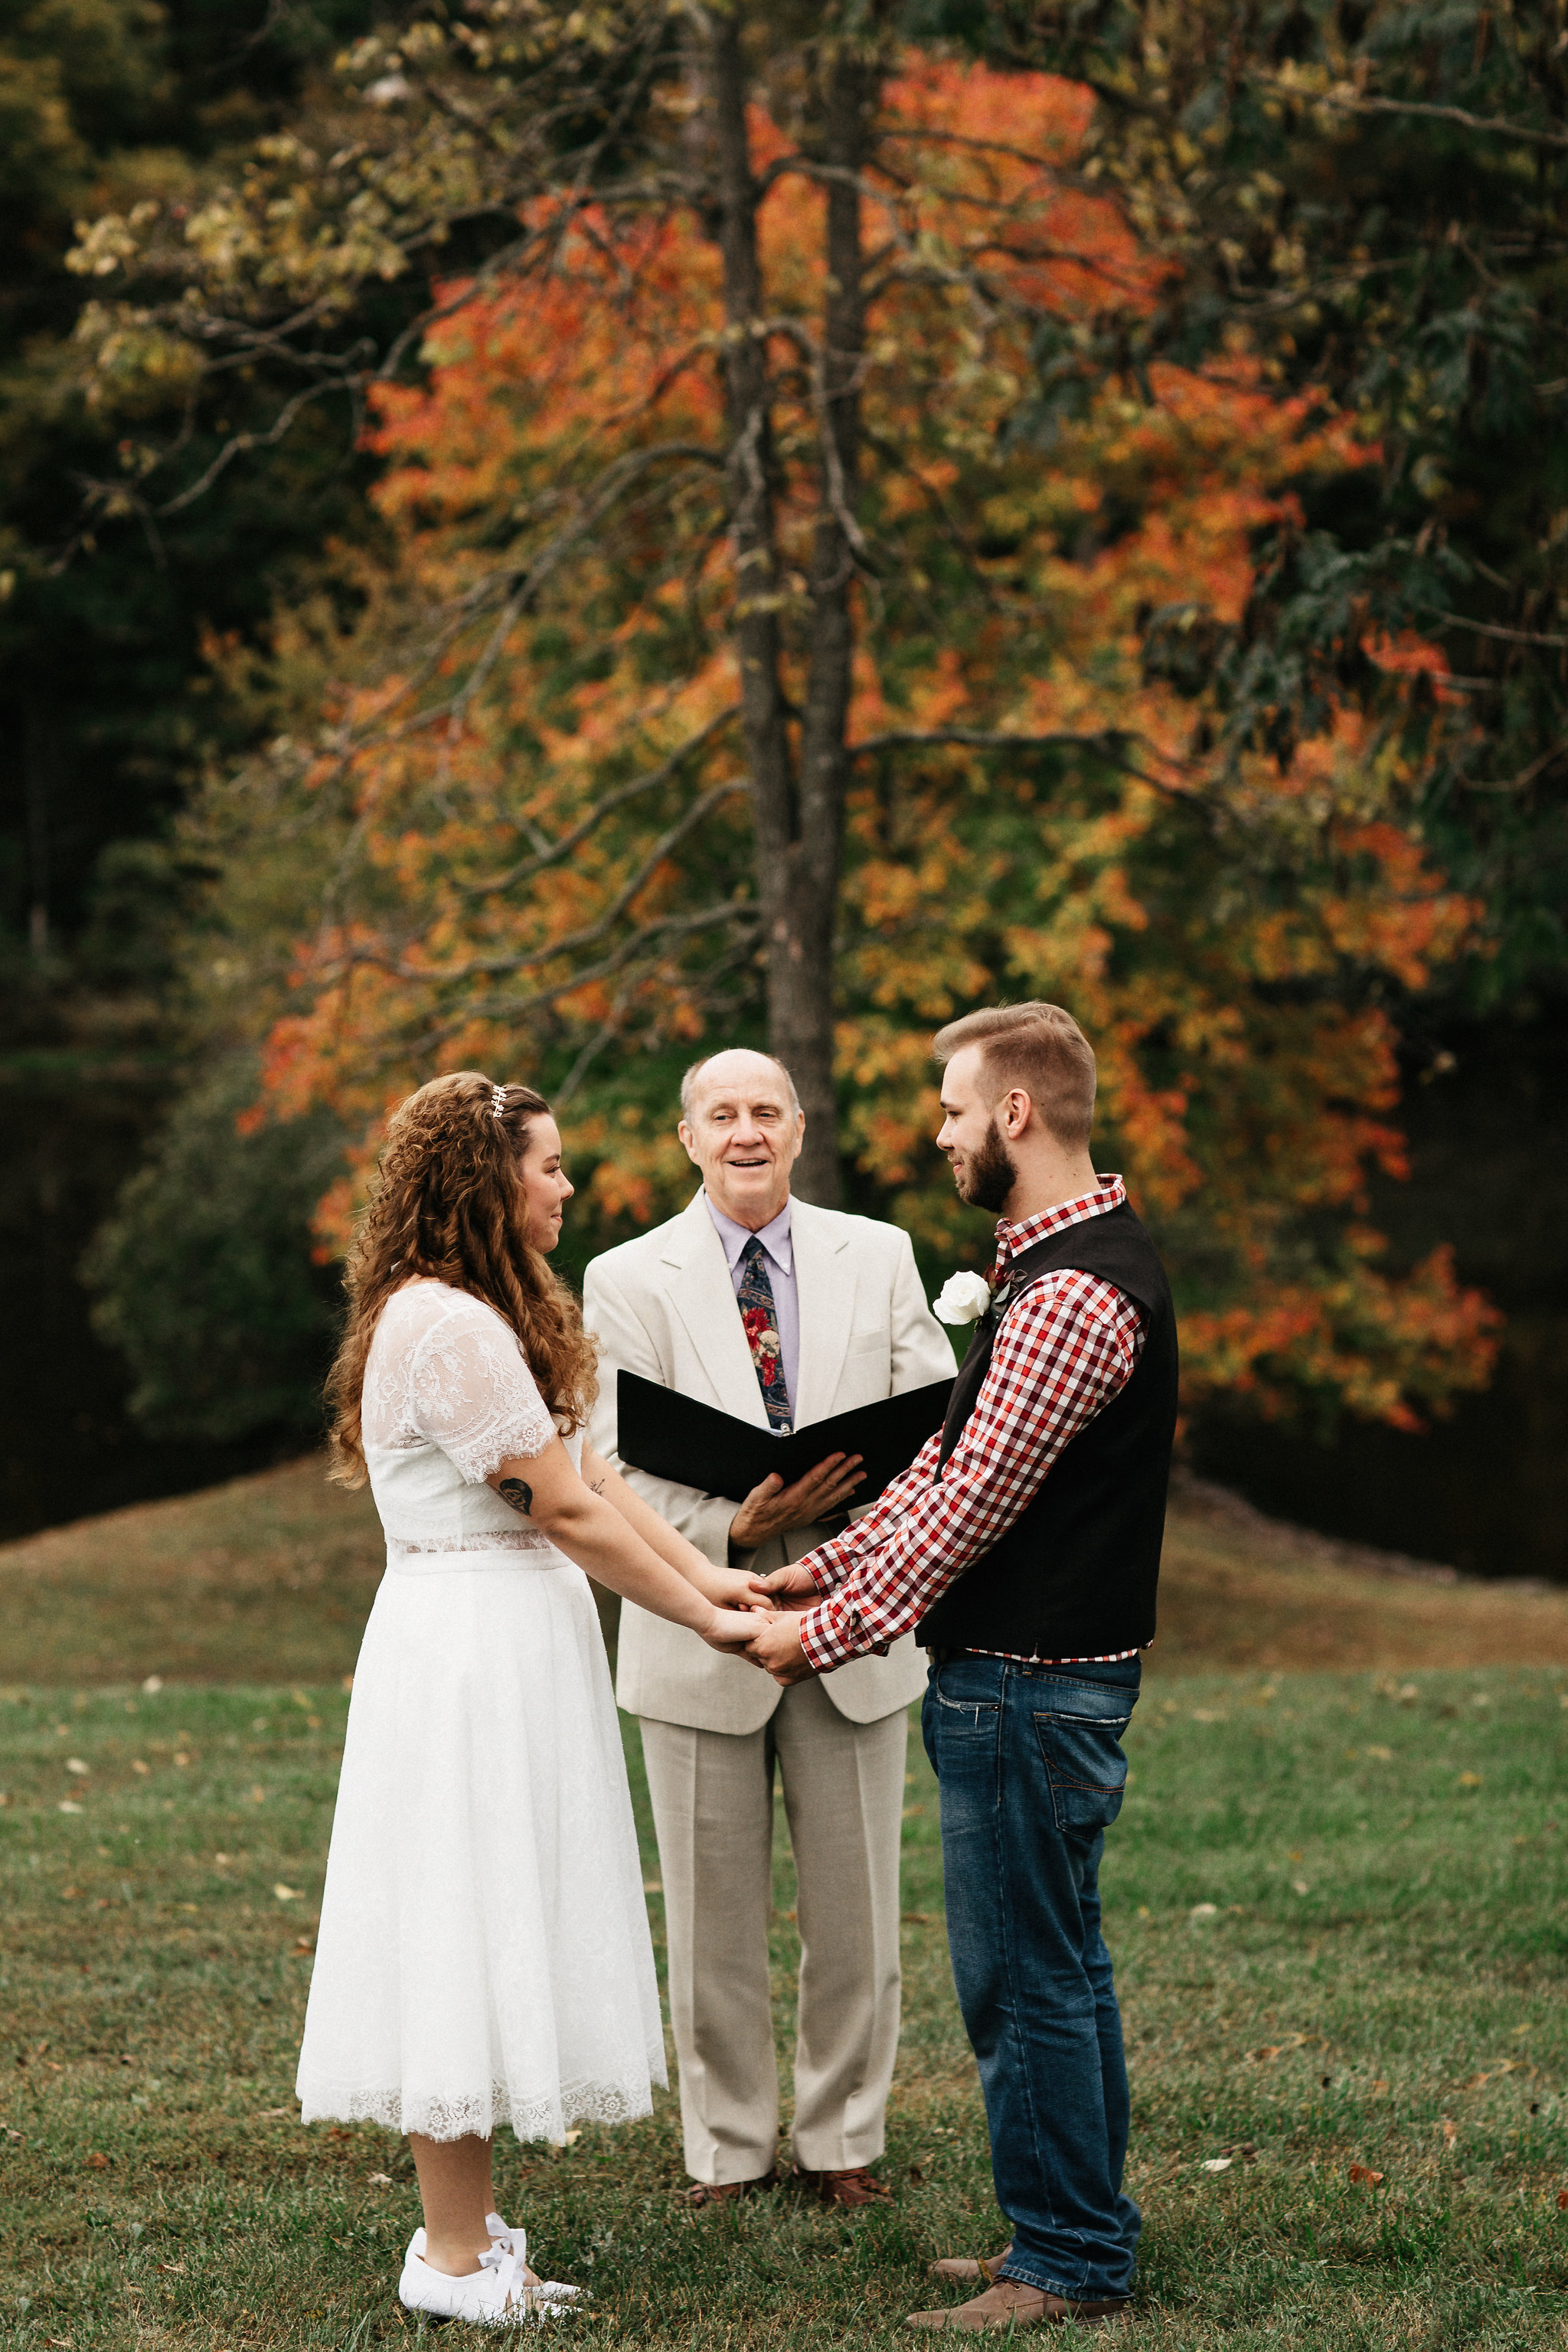 Caitlin&CodyMarried2017-11-03at19.19.37PM20.jpg